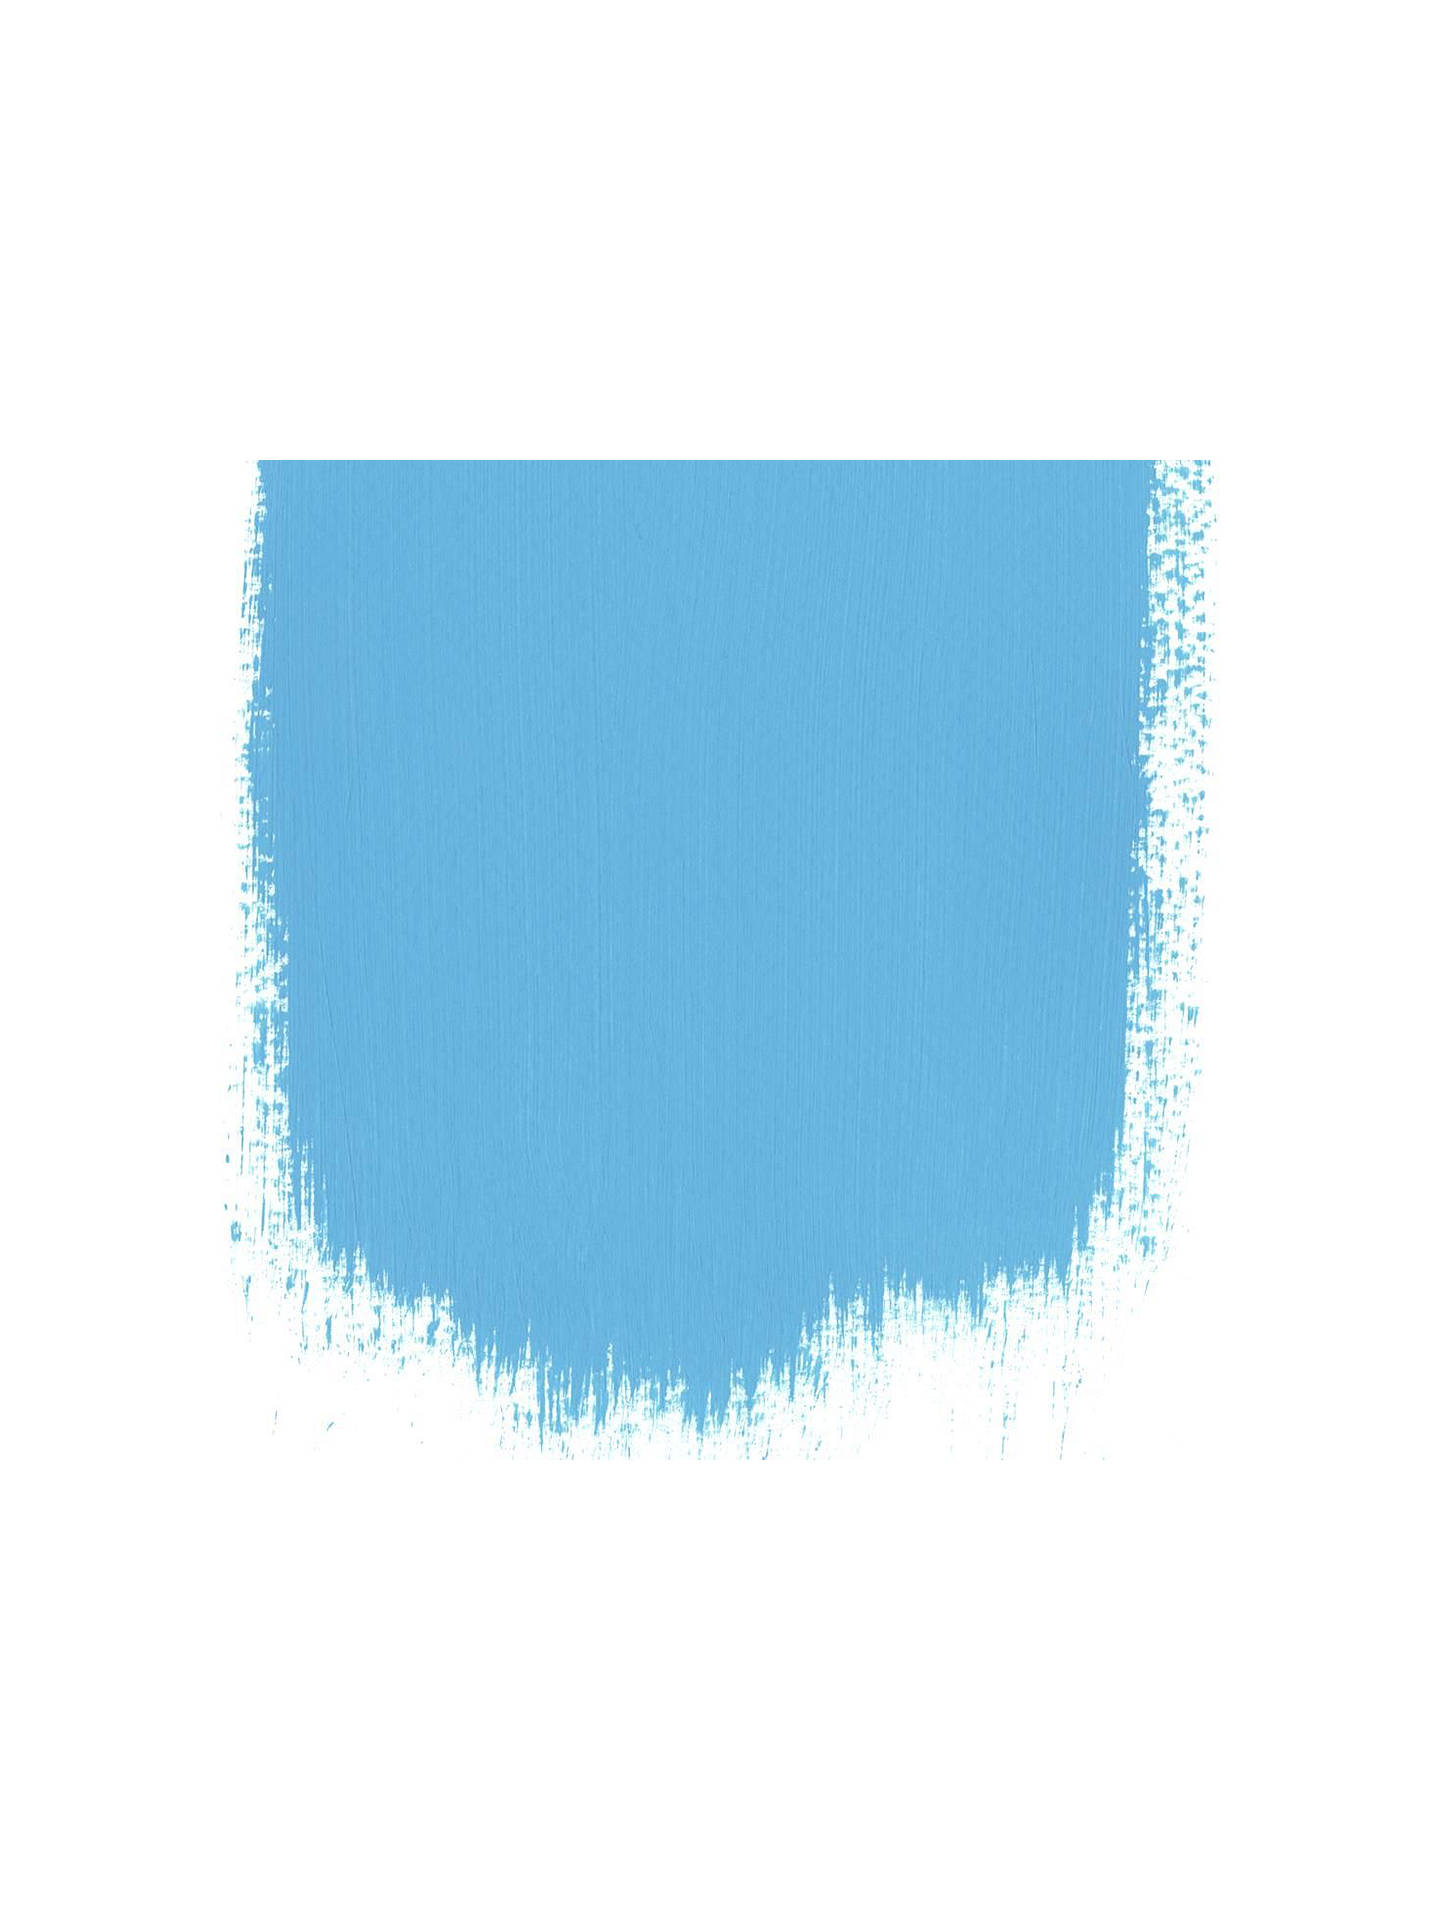 Buy Designers Guild Water Based Eggshell 1L, Mid Blues, Cornish Ware (48) Online at johnlewis.com